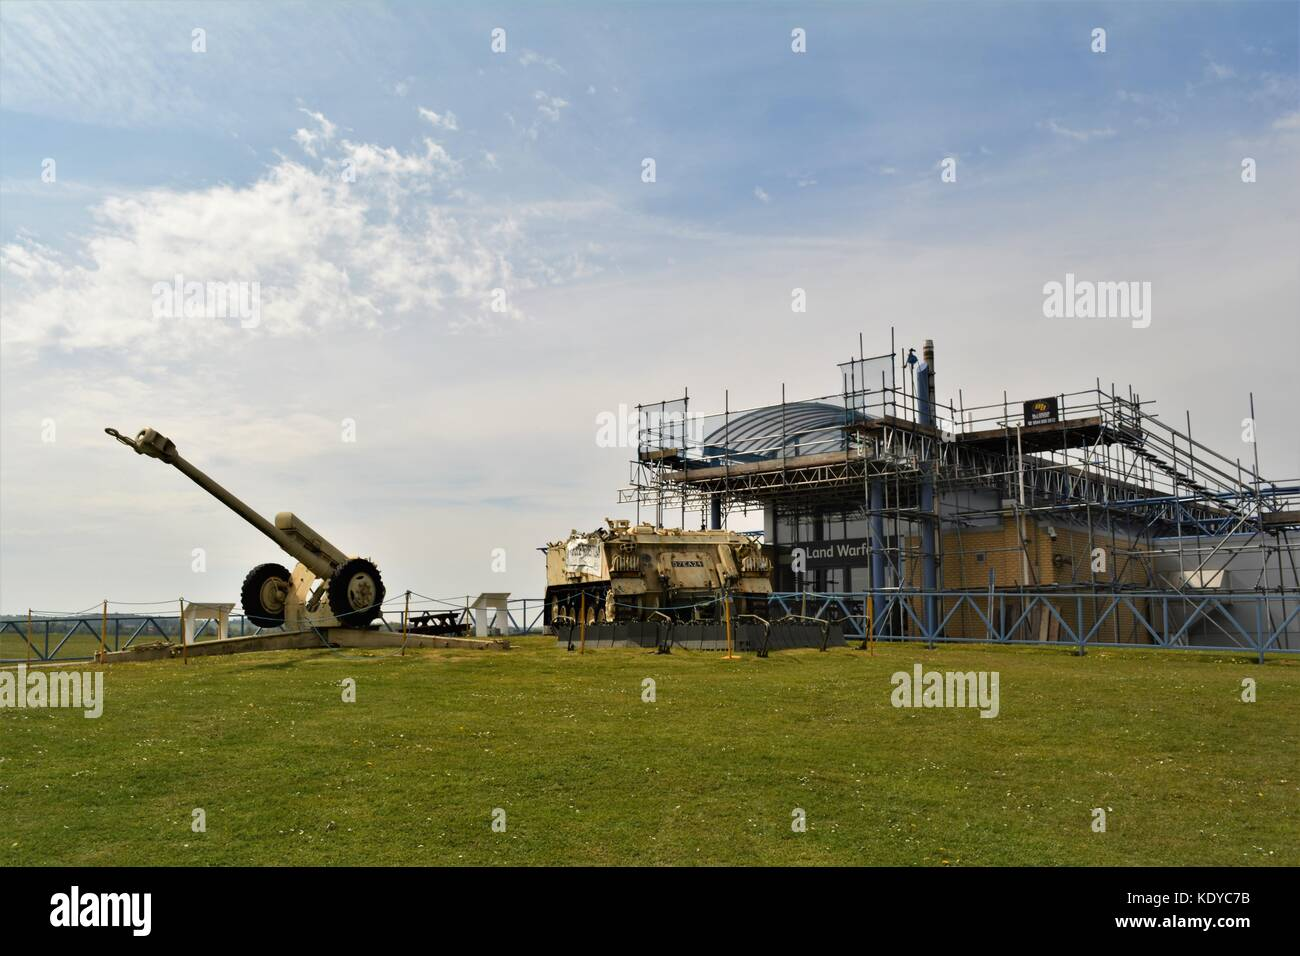 IWM Duxford land warfare hall with scaffolding around for repairs - Stock Image